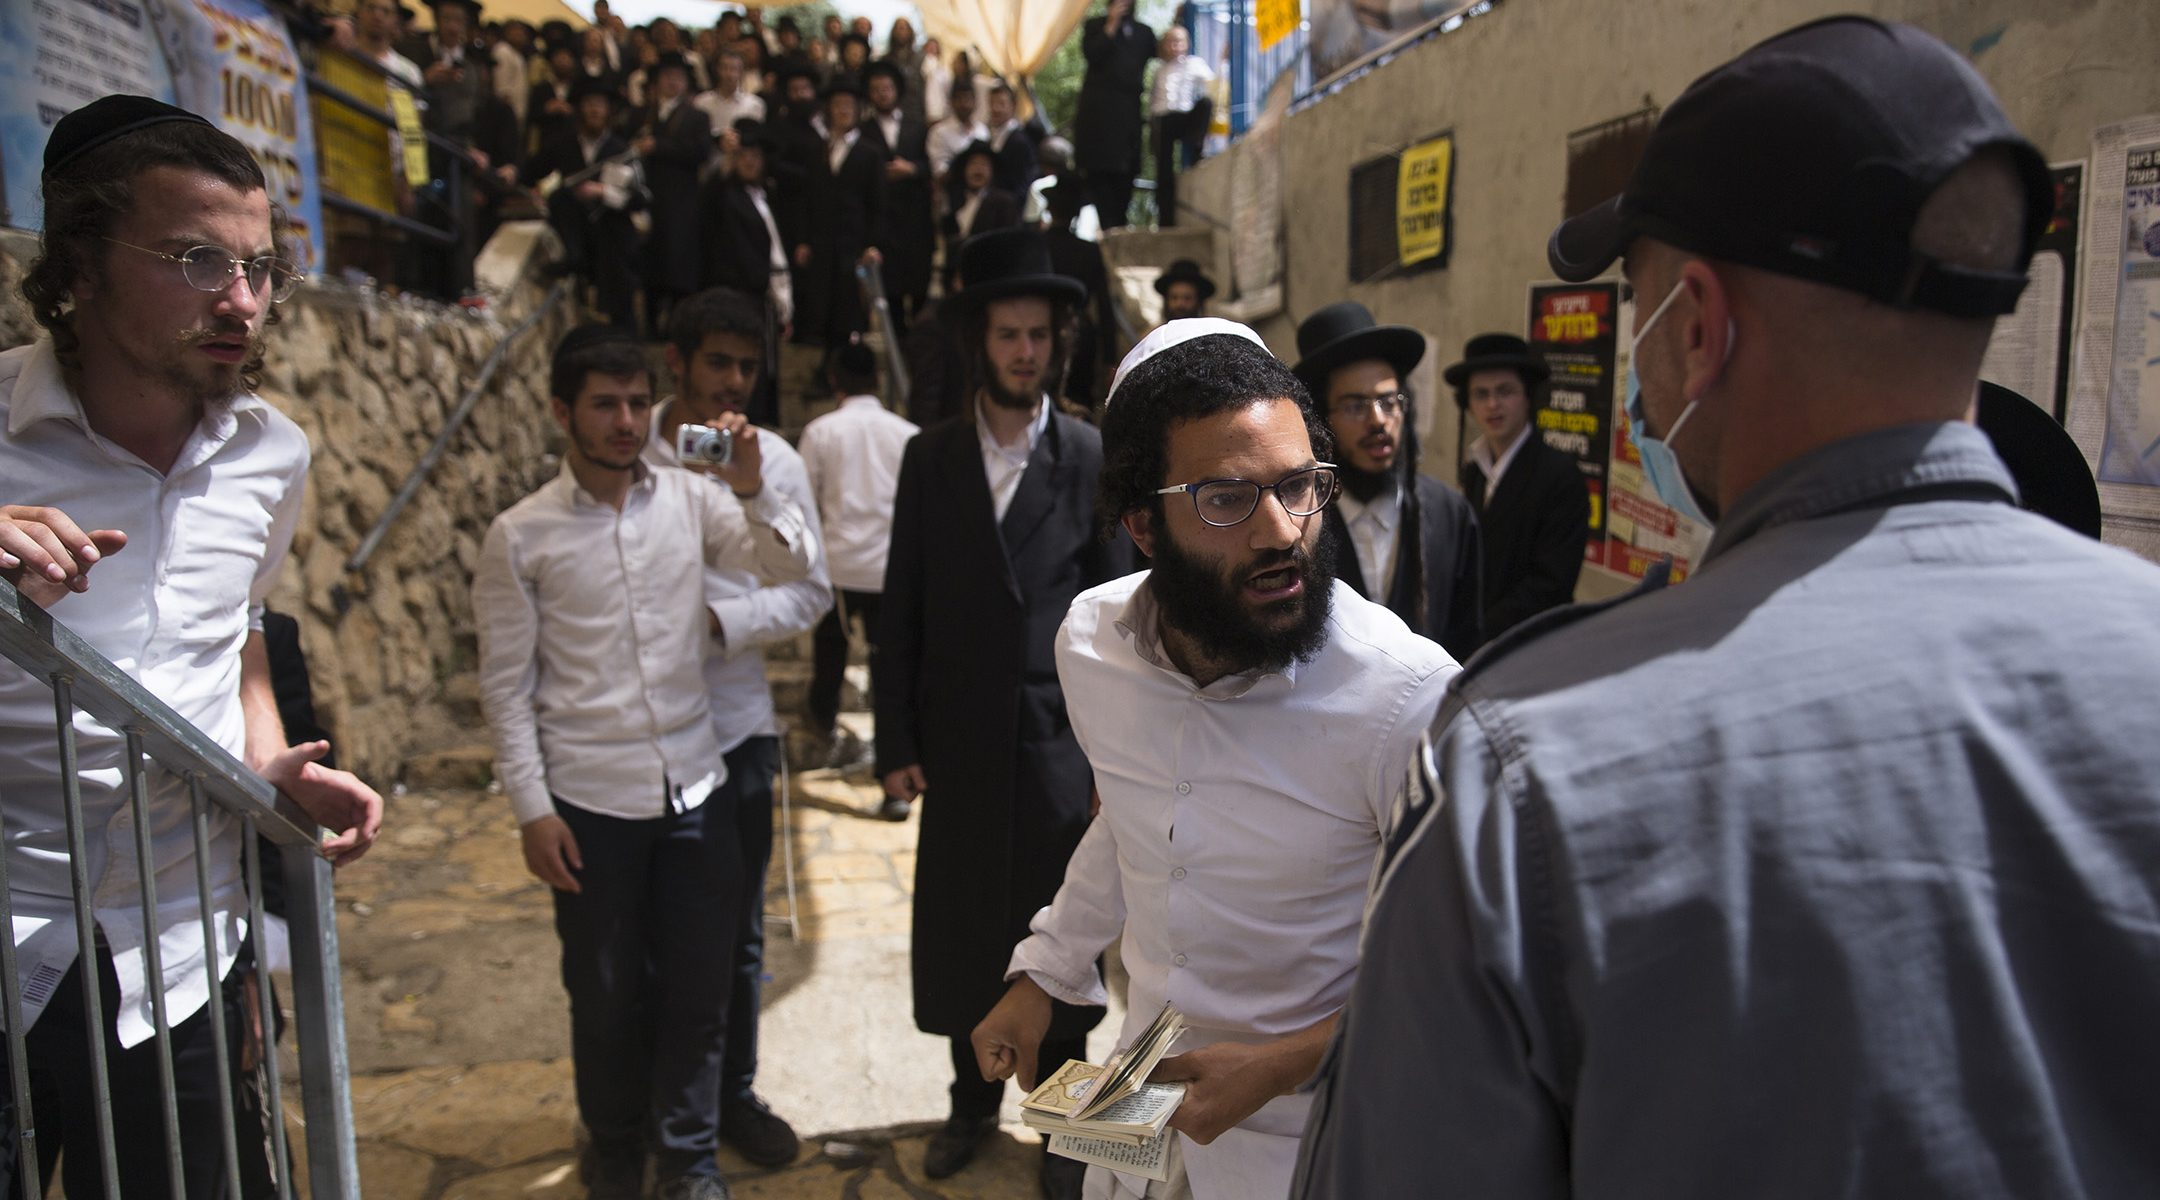 Mourners gather during the funeral of one of those who died in a stampede during the Jewish religious festival of Lag Ba'Omer at the Jewish Orthodox pilgrimage site of Mount Meron in Israel on April 30, 2021. (Ilia Yefimovich/picture alliance via Getty Images)